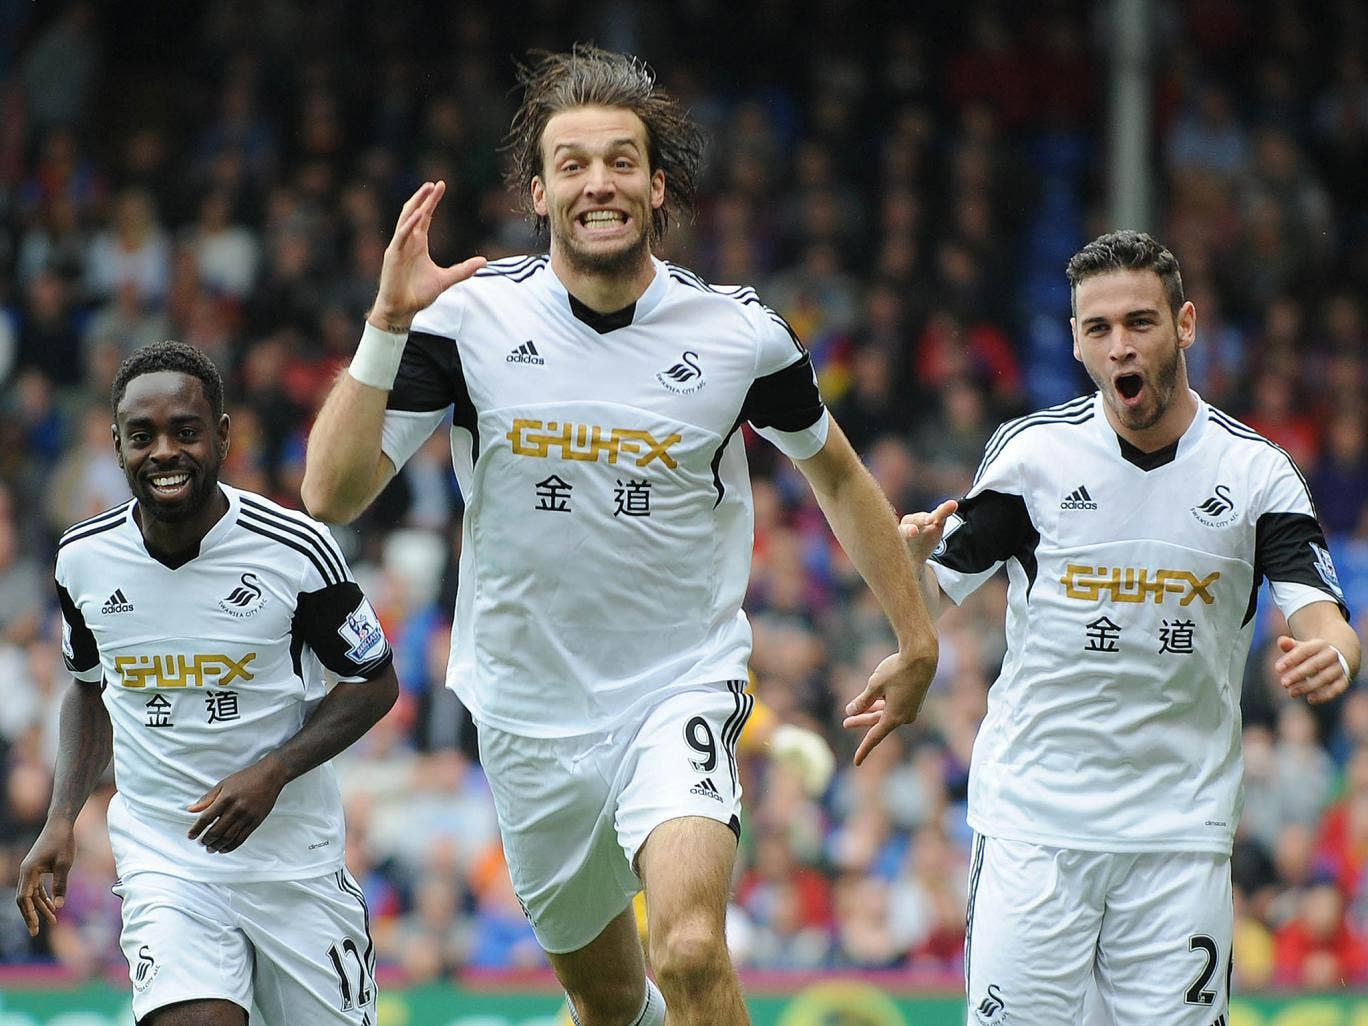 Michu celebrates after scoring for Swansea against Crystal Palace